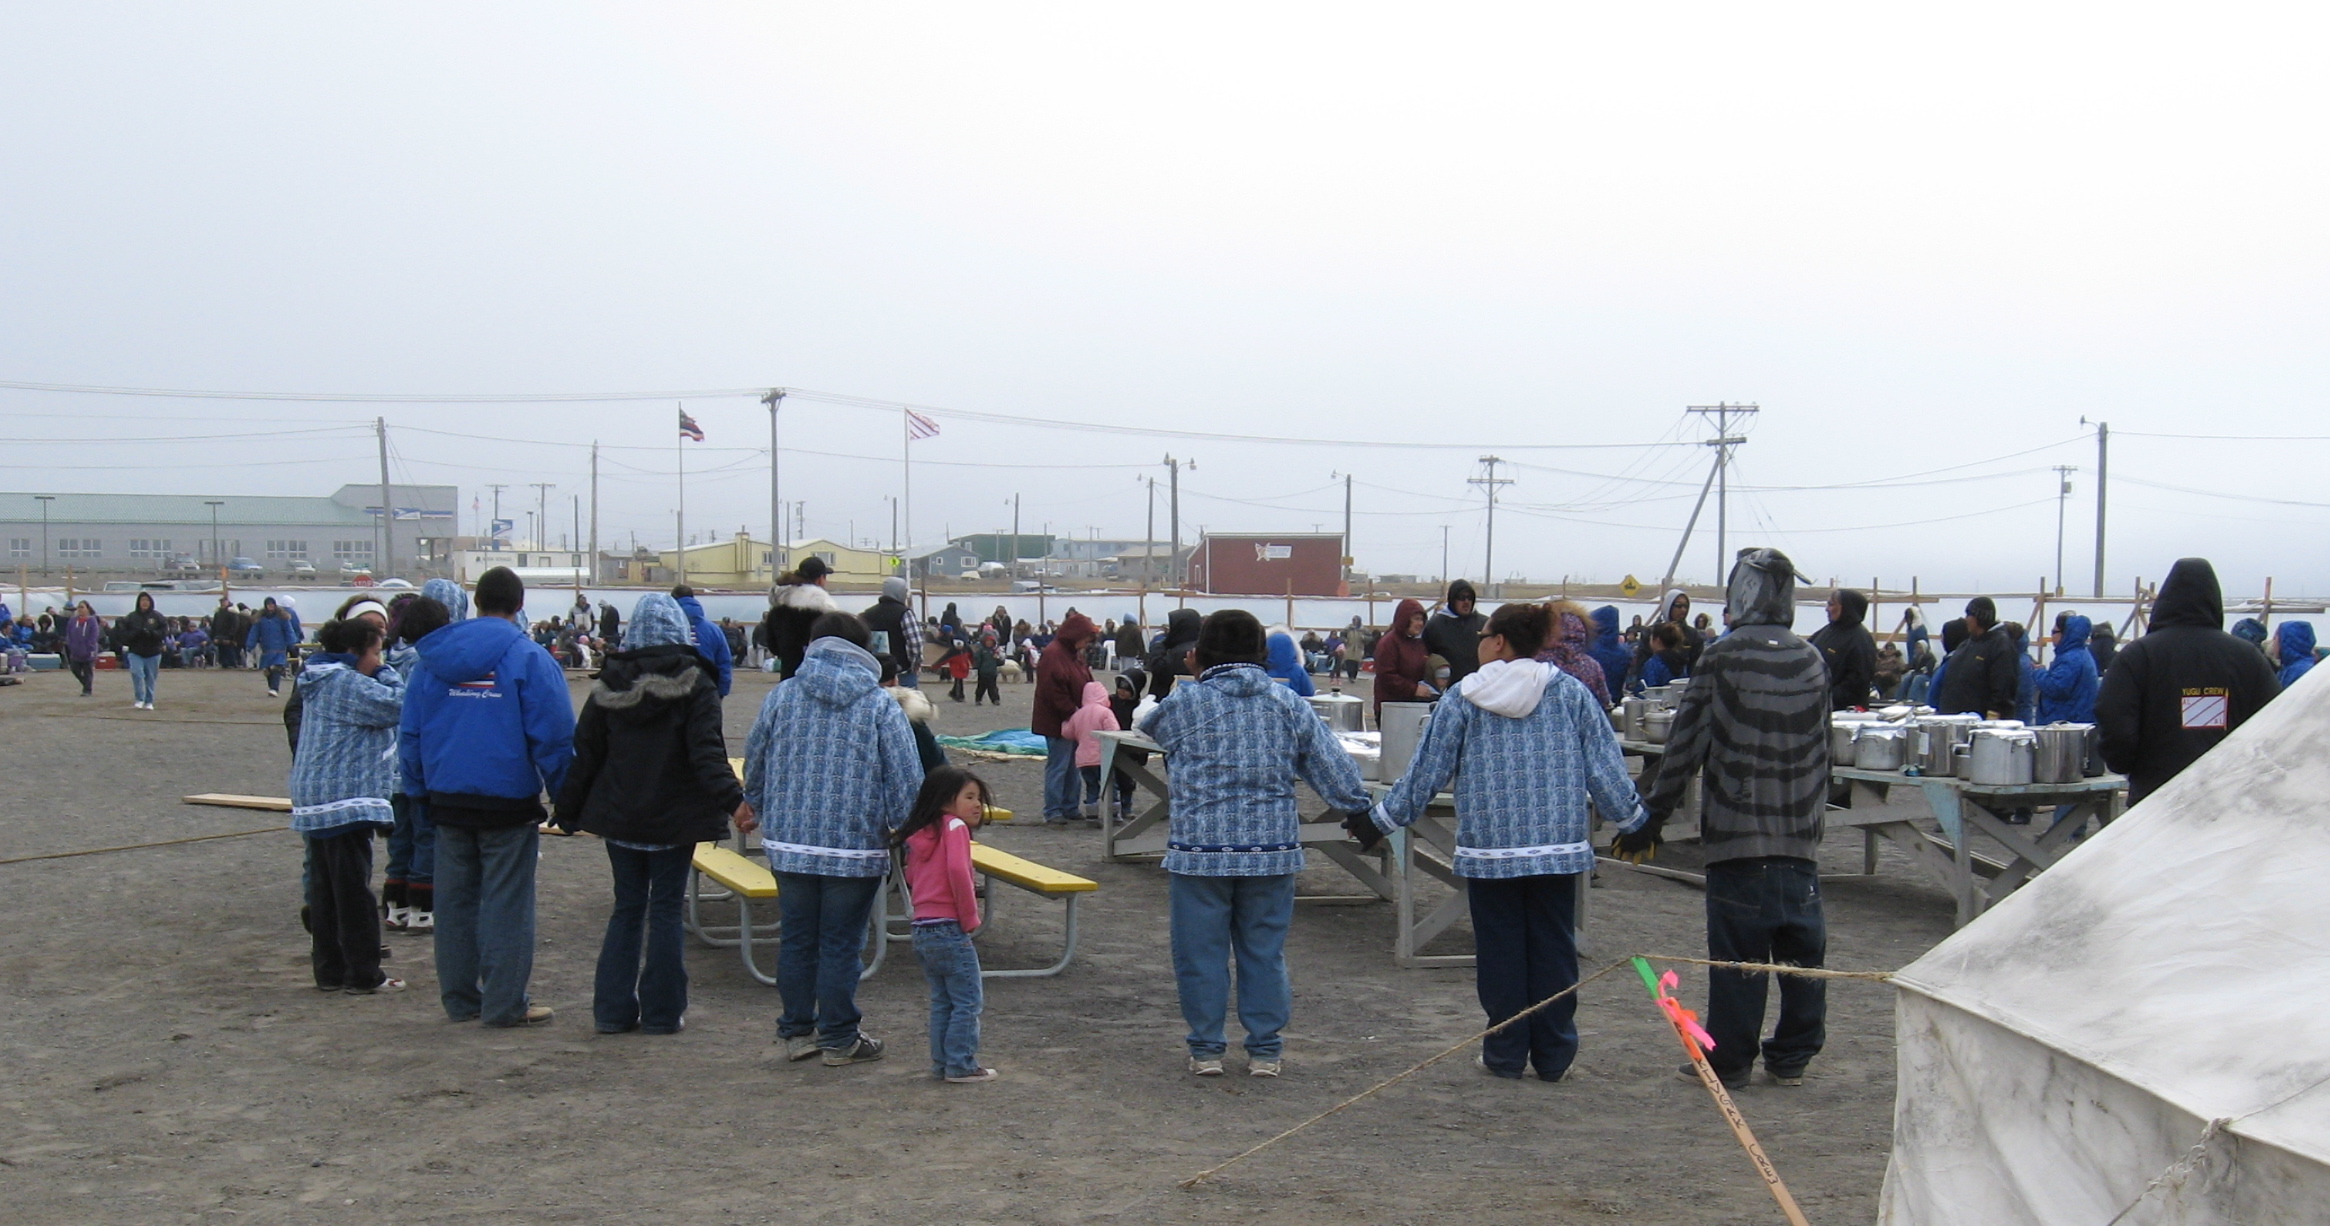 This photo, from Fairbanks Open Radio, documents Barrow's June Nalukataq. The two whaling crews who brought in the whales fly their flags, center, and the community gives thanks for the harvest. Later, everyone enjoys the blanket toss and dancing in the gym. Photo: David Koester